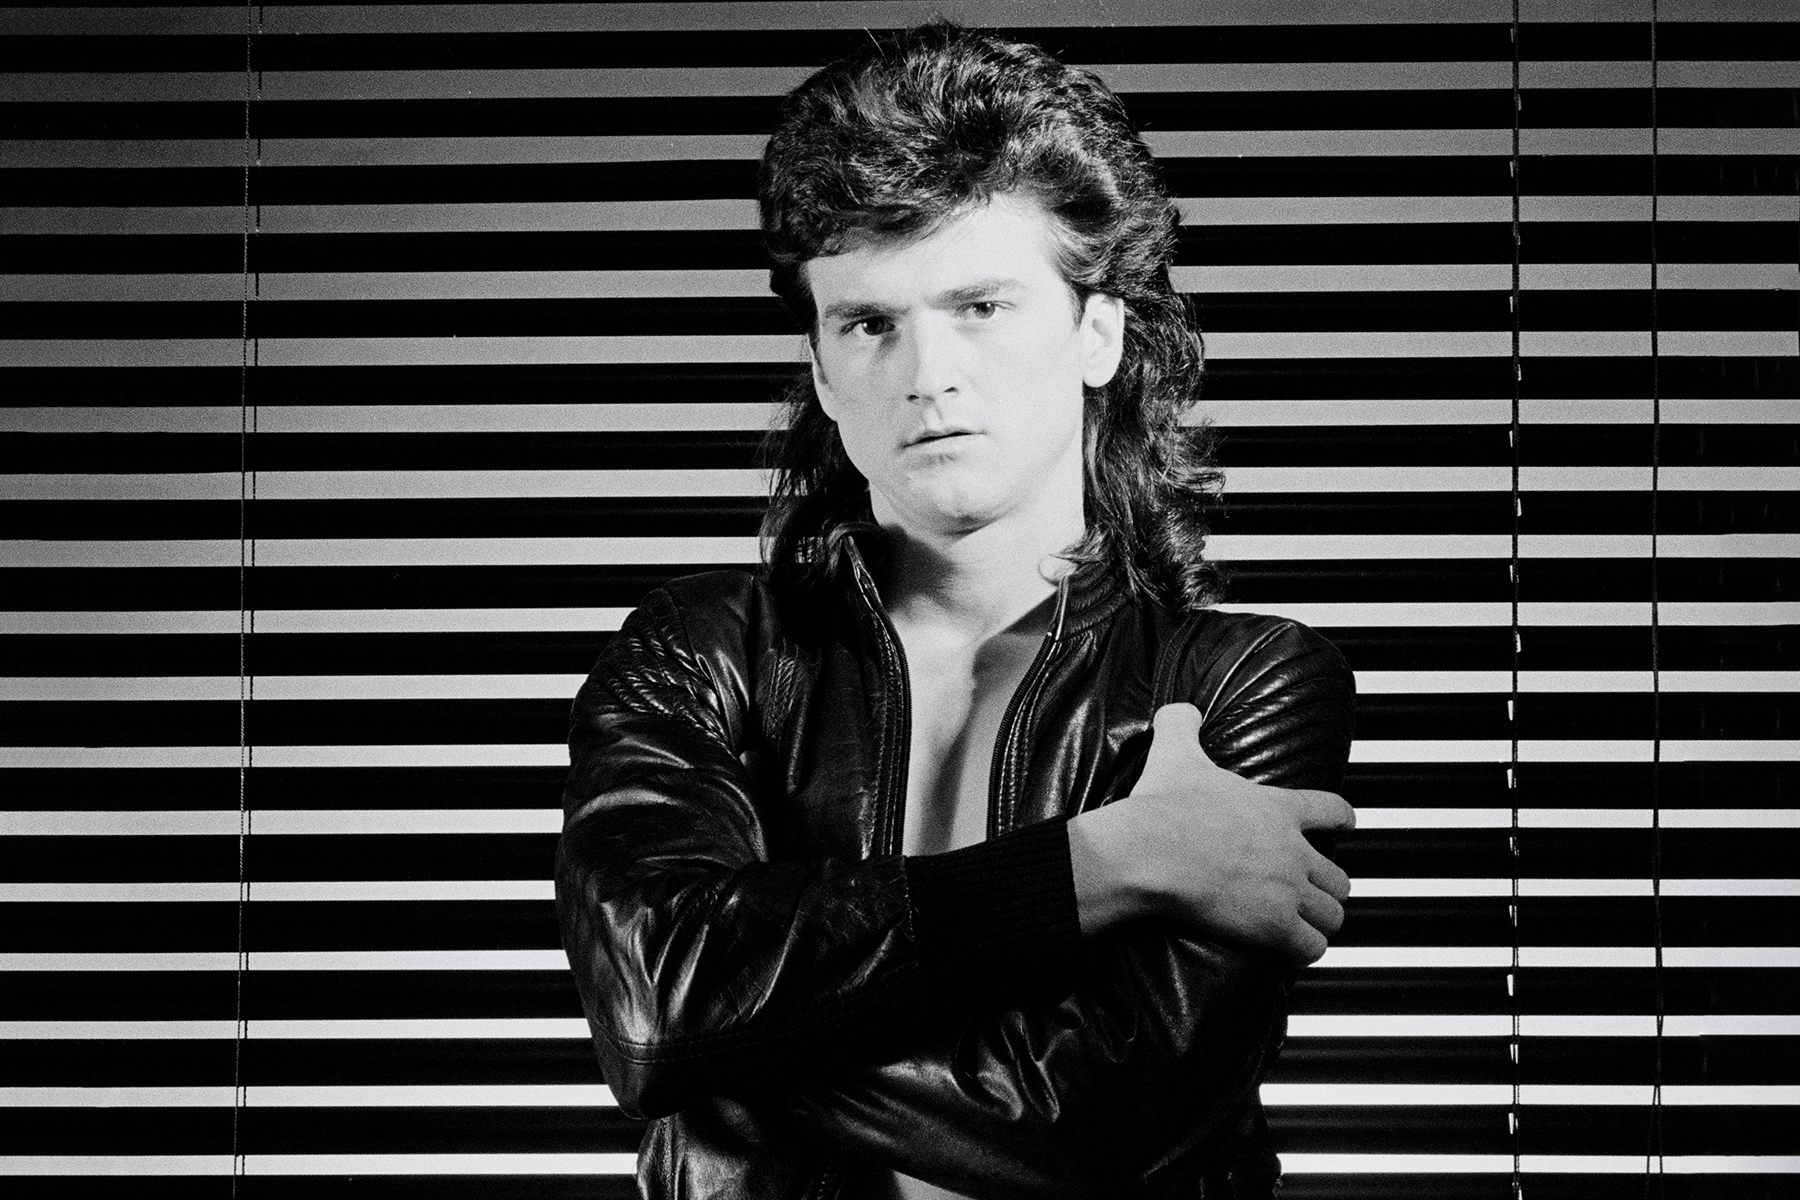 LONDON - 1st DECEMBER: Singer Les McKeown (ex Bay City Rollers) posed in London in December 1979. (Photo by Fin Costello/Redferns)